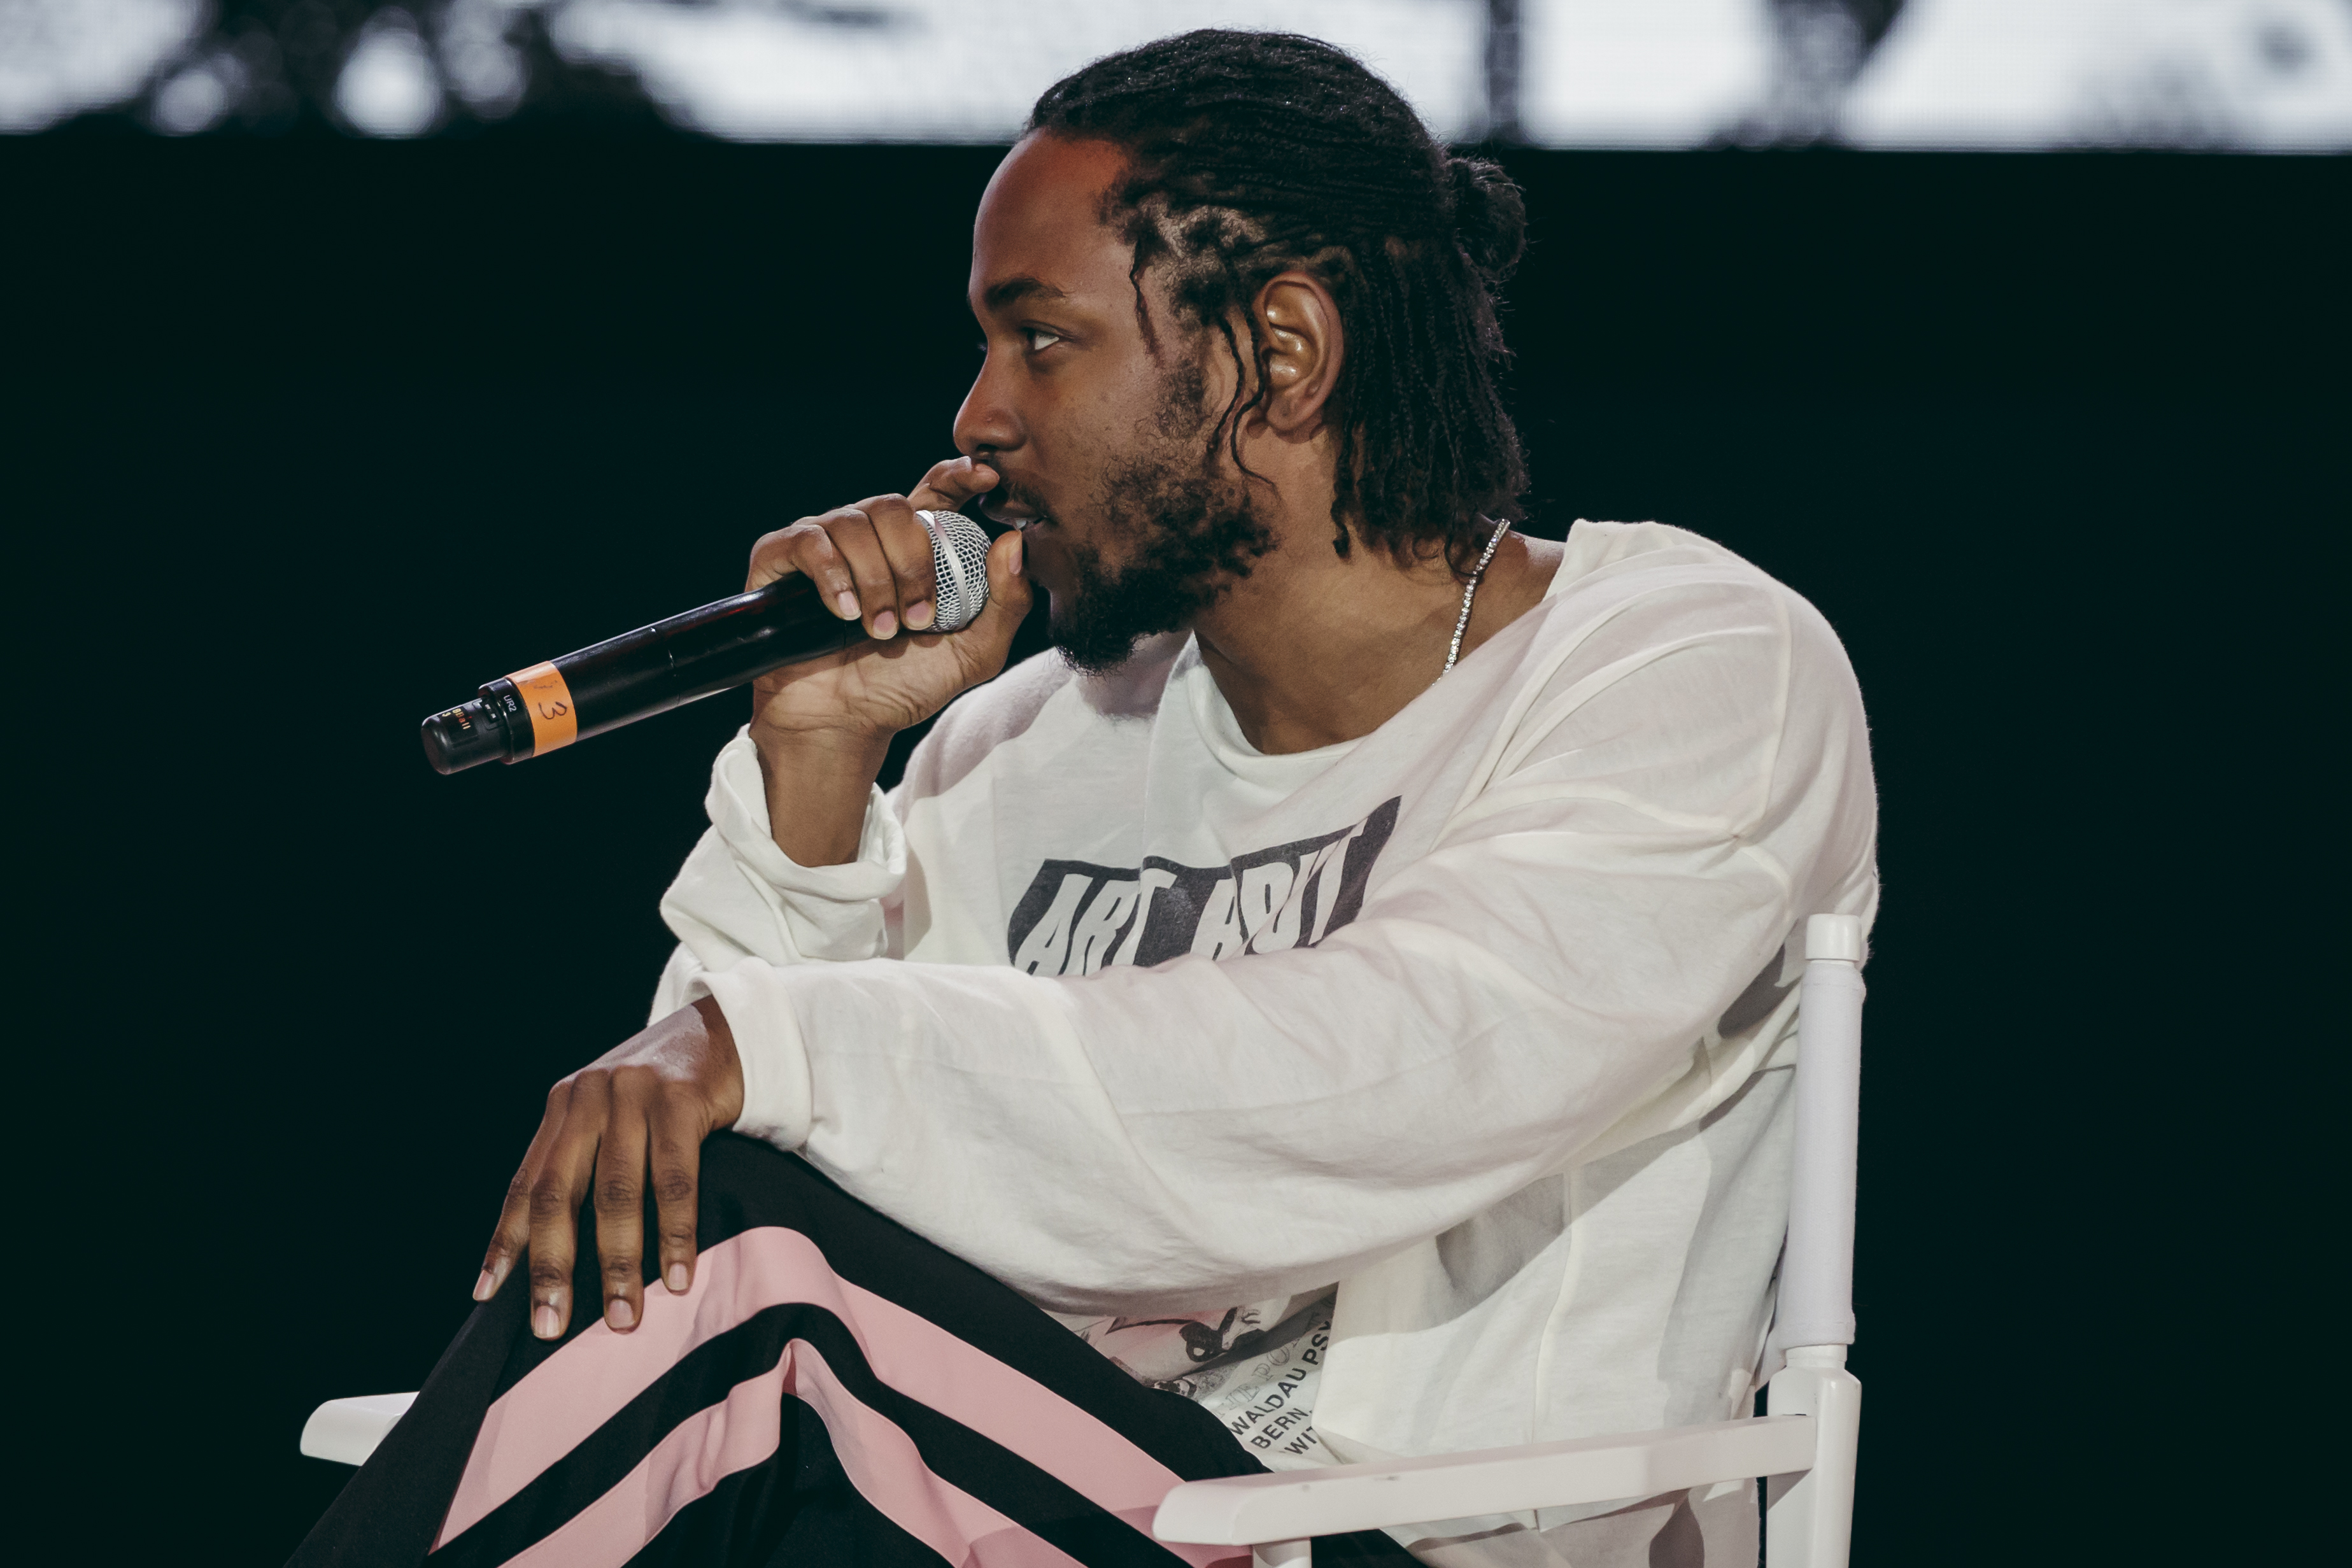 15456c8d1f3 Kendrick Lamar arrives at the Nike Makers H.Q. s where he talks about his  collaboration with the shoe company and the launch of the Kendrick-inspired  Nike ...